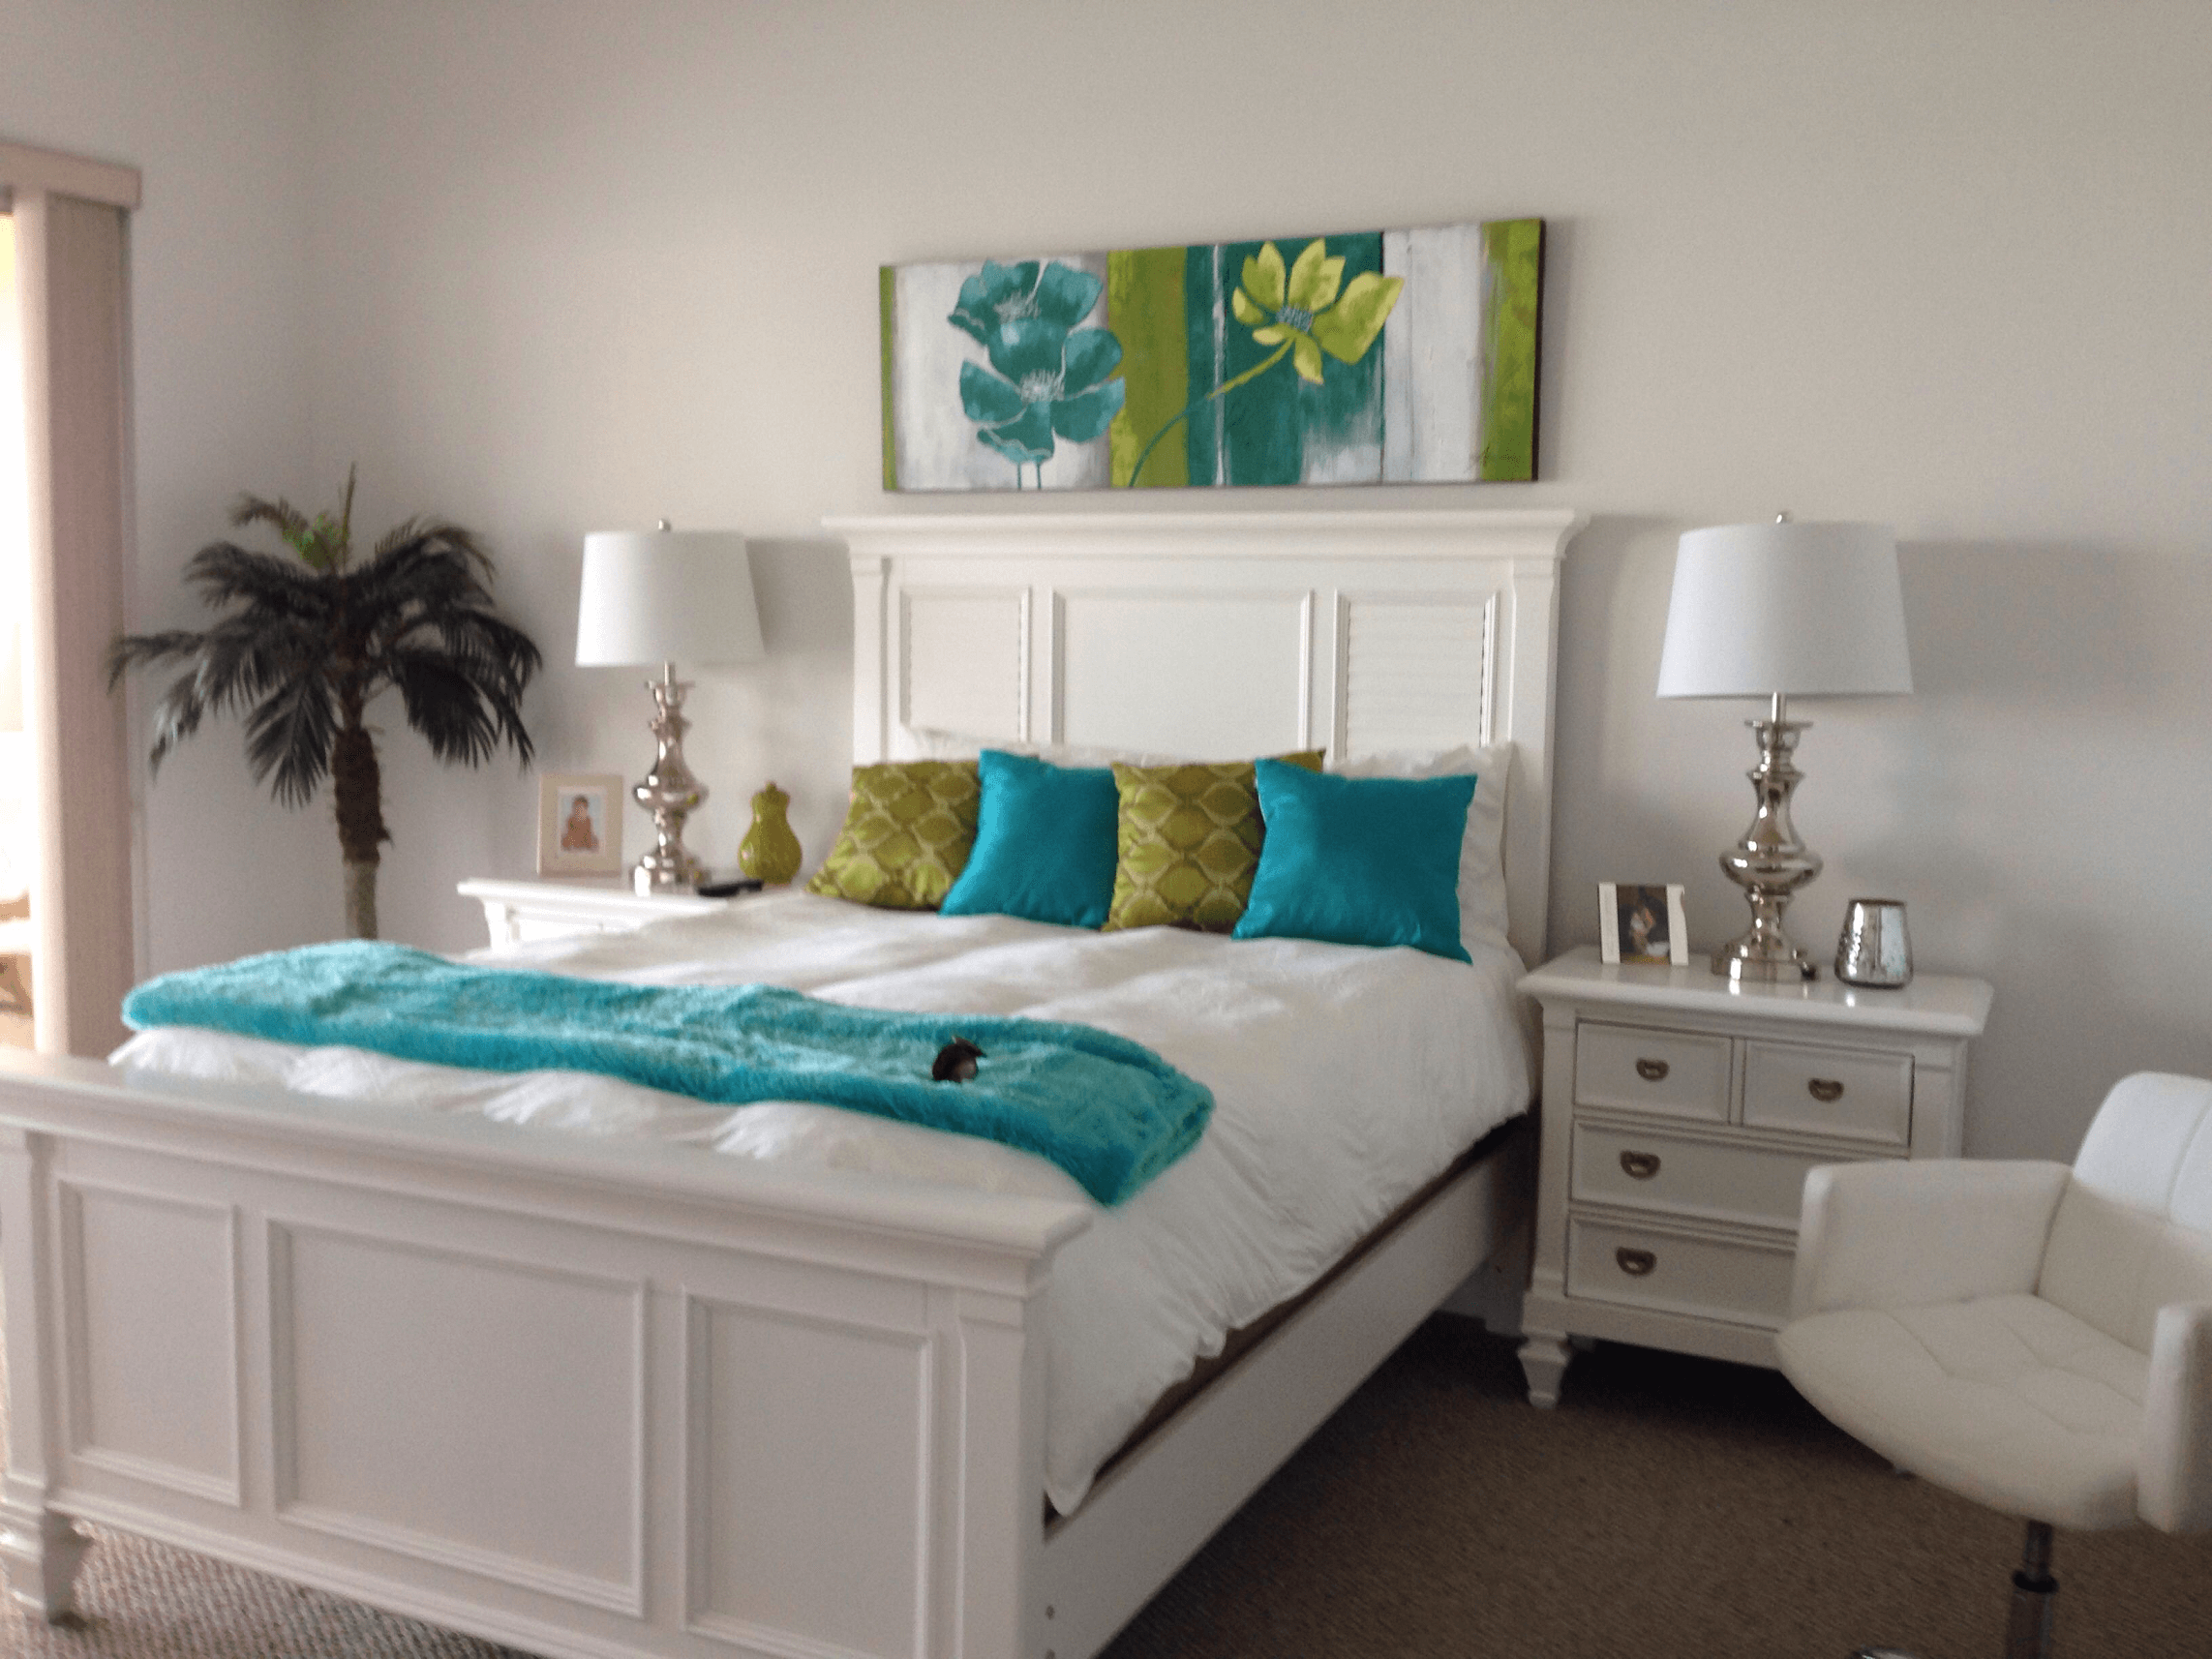 Bedroom Makeover On A Budget Pictures